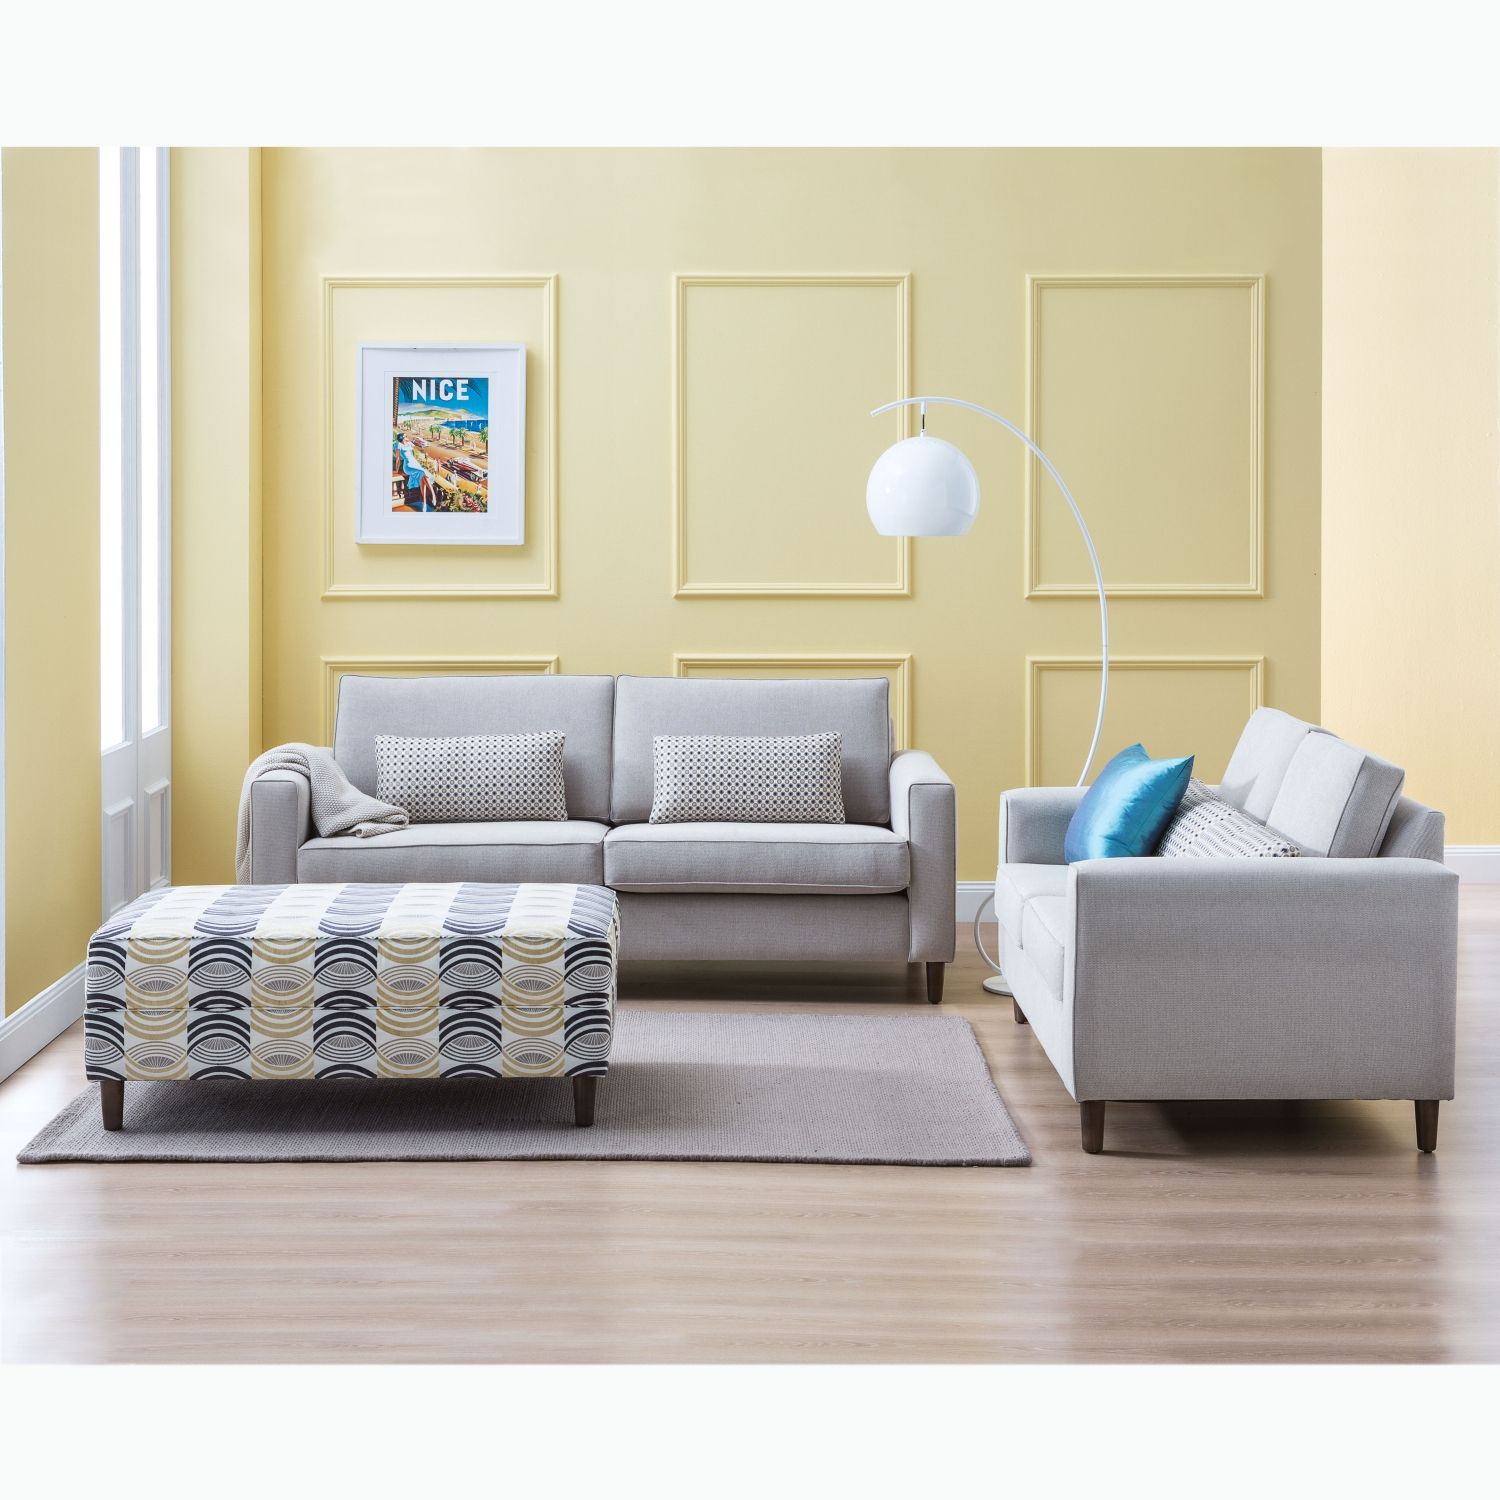 Domayne Furniture Fabric Lounges Condo Fabric Sofa Package From Domayne Online Lounge